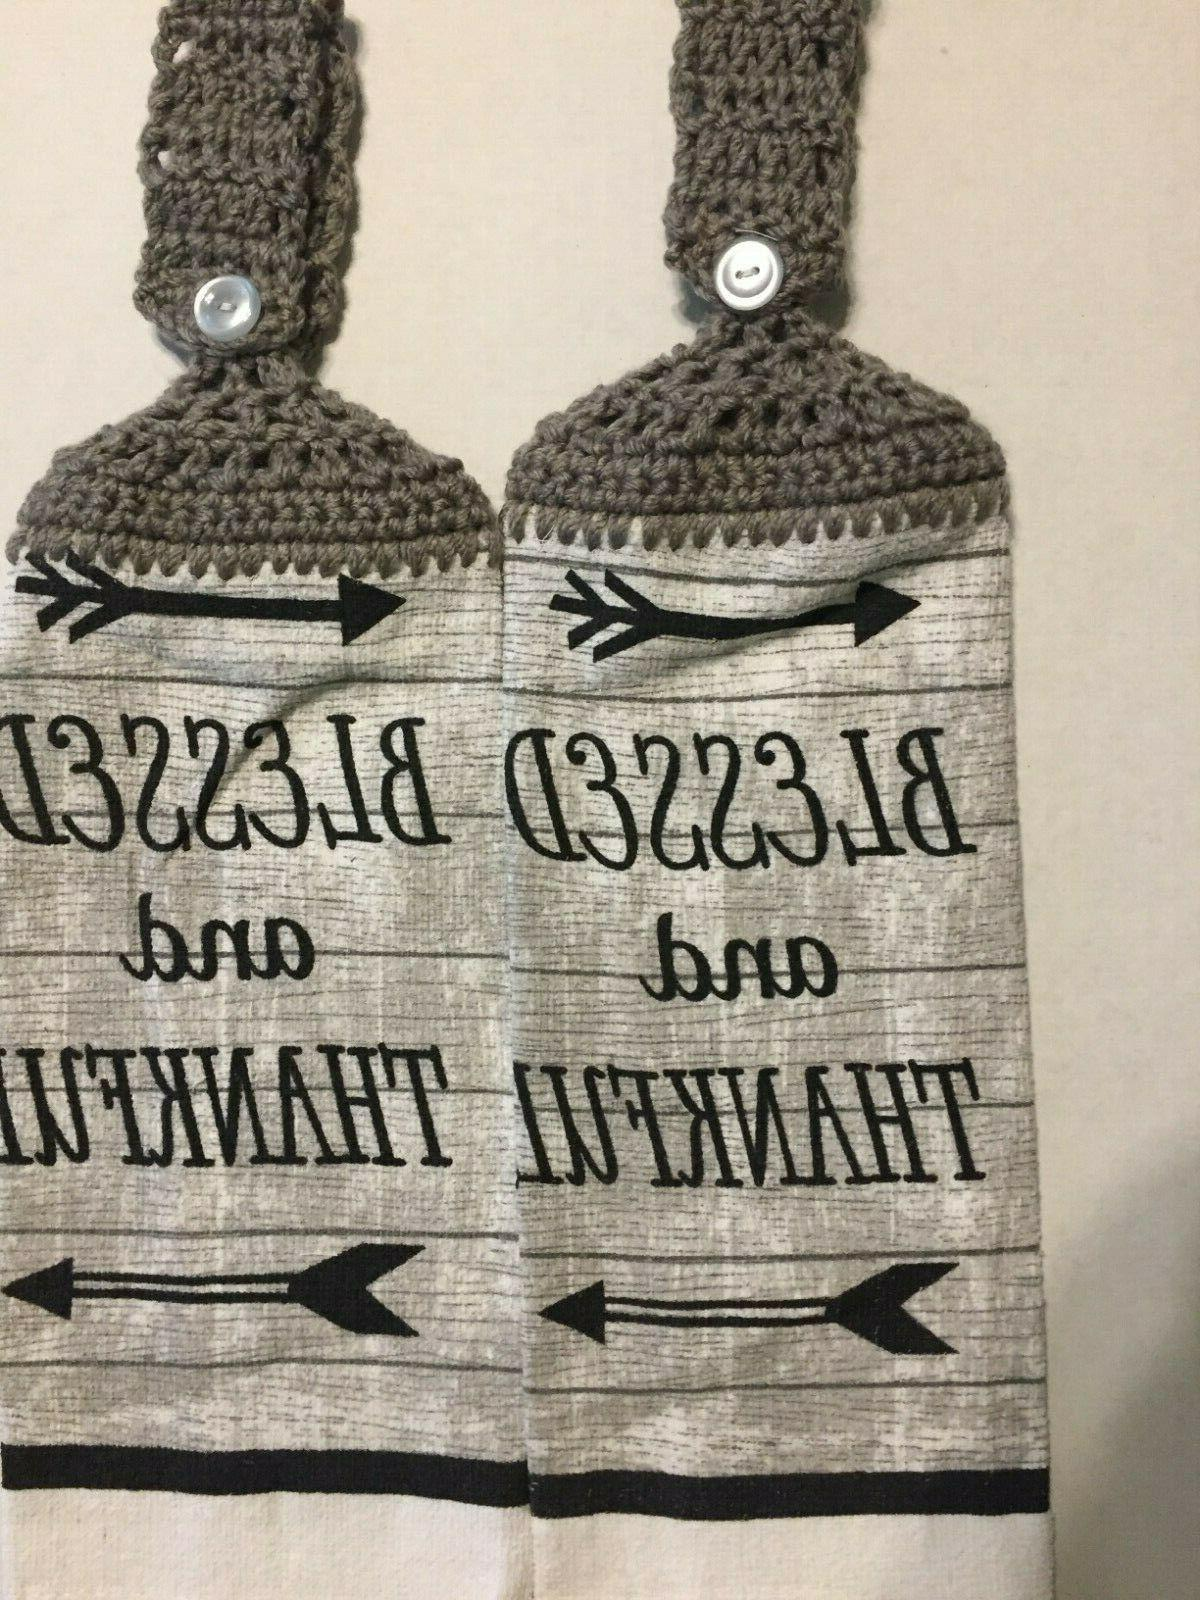 2 hanging crochet kitchen dish towels blessed